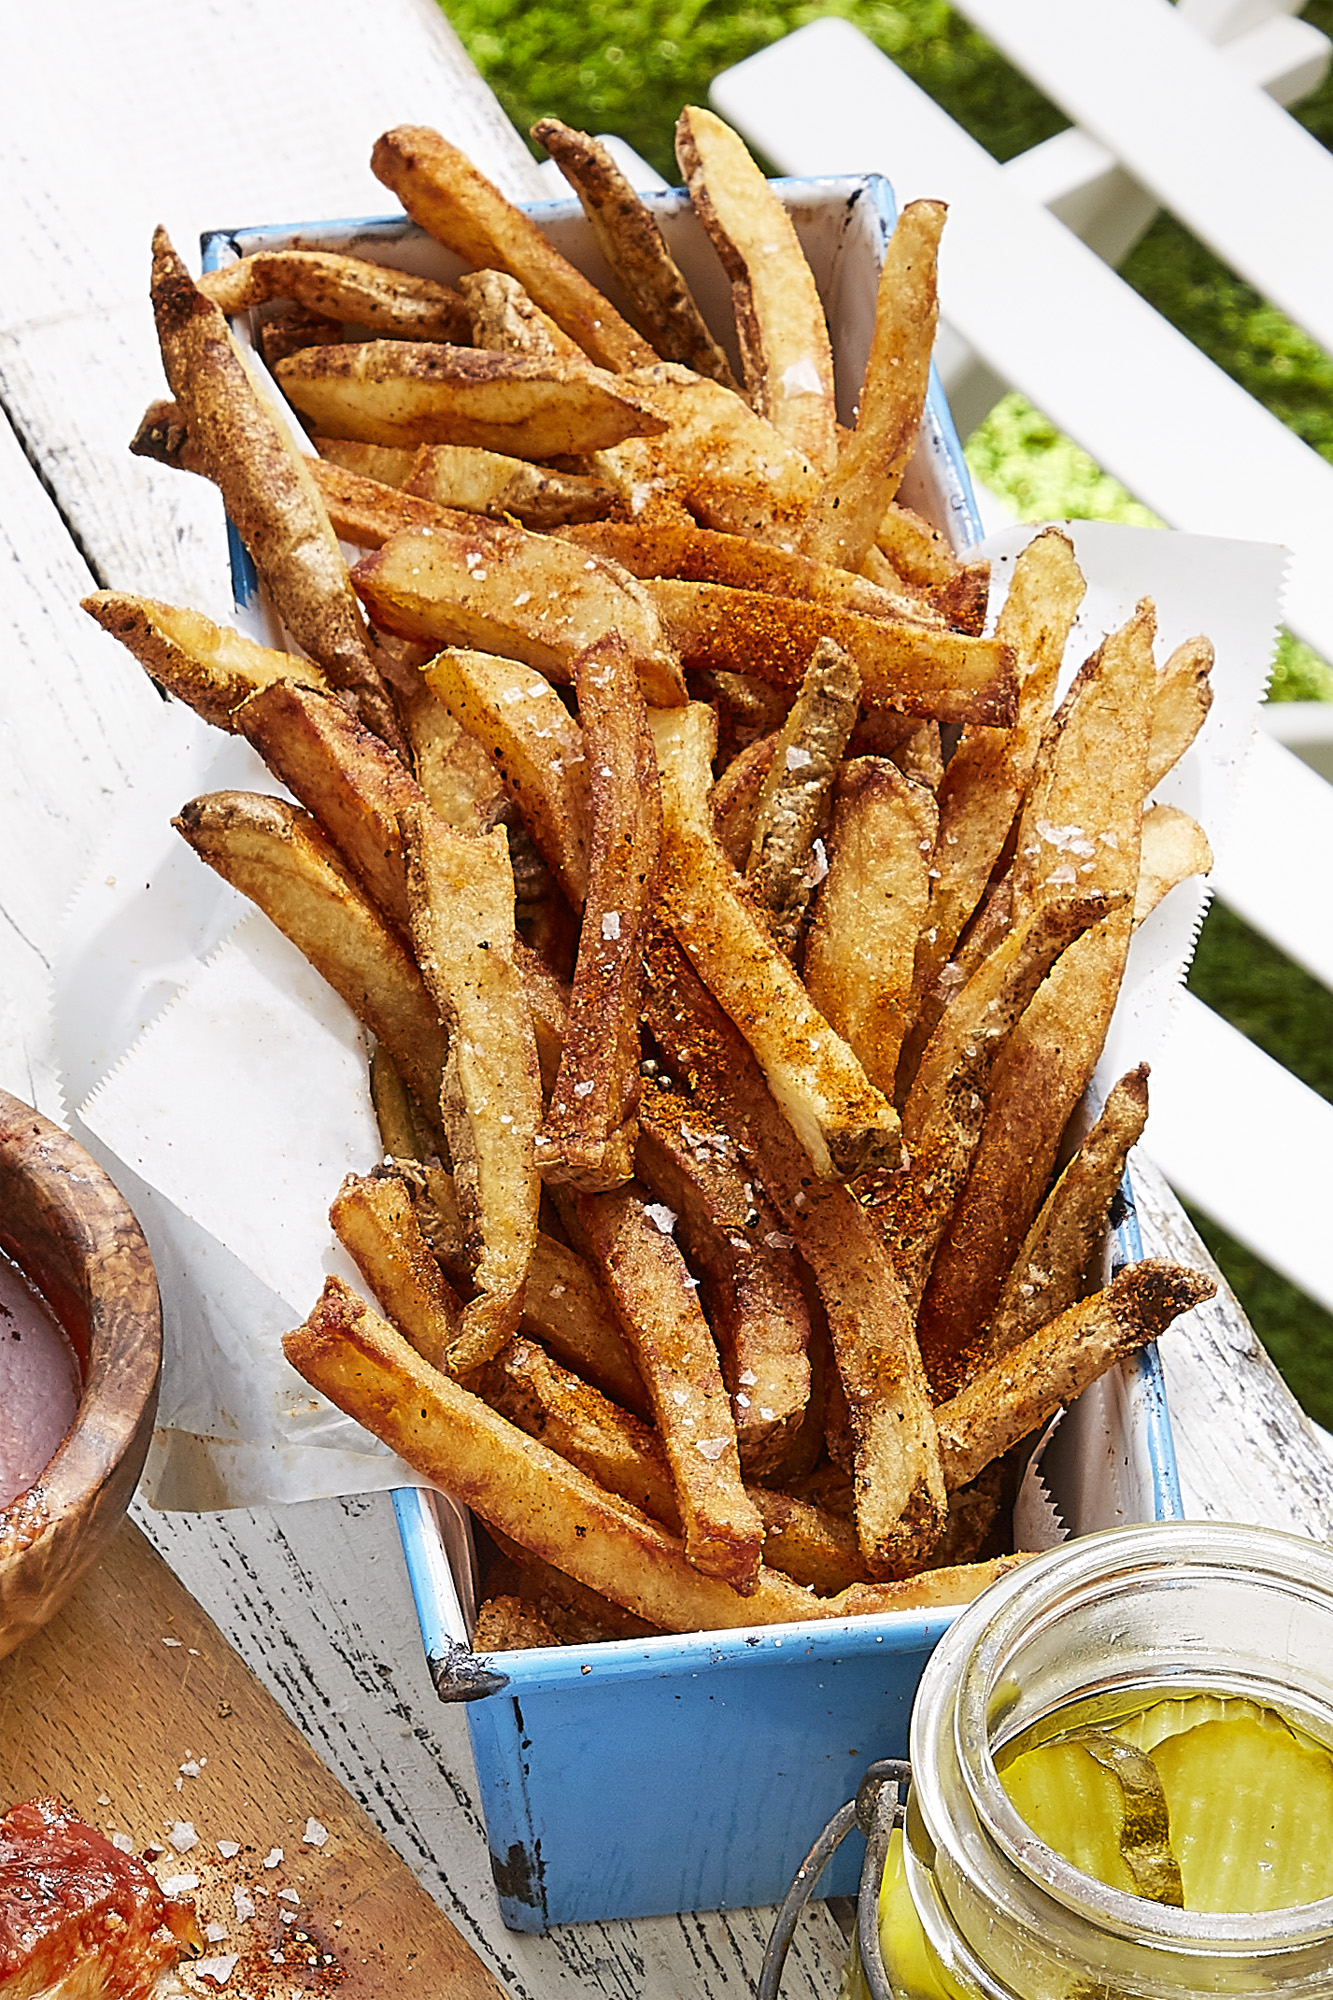 best old bay french fries recipe how to make old bay. Black Bedroom Furniture Sets. Home Design Ideas